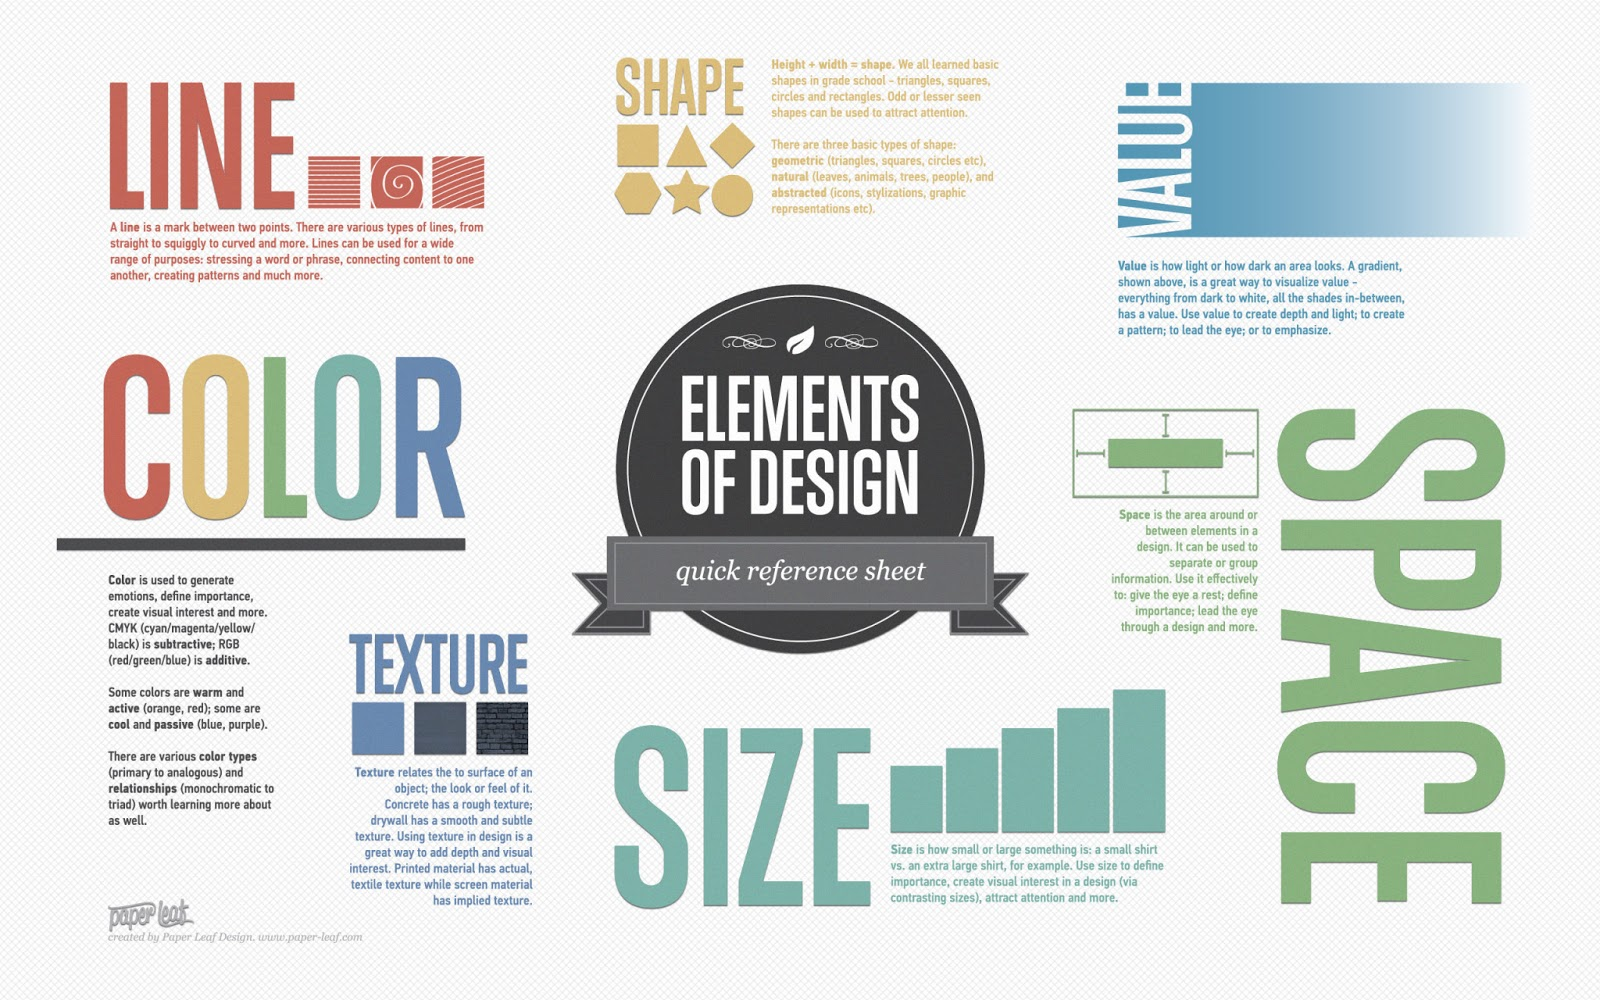 Elements And Principles Of Design Line : Elements of art design infographic ipad room